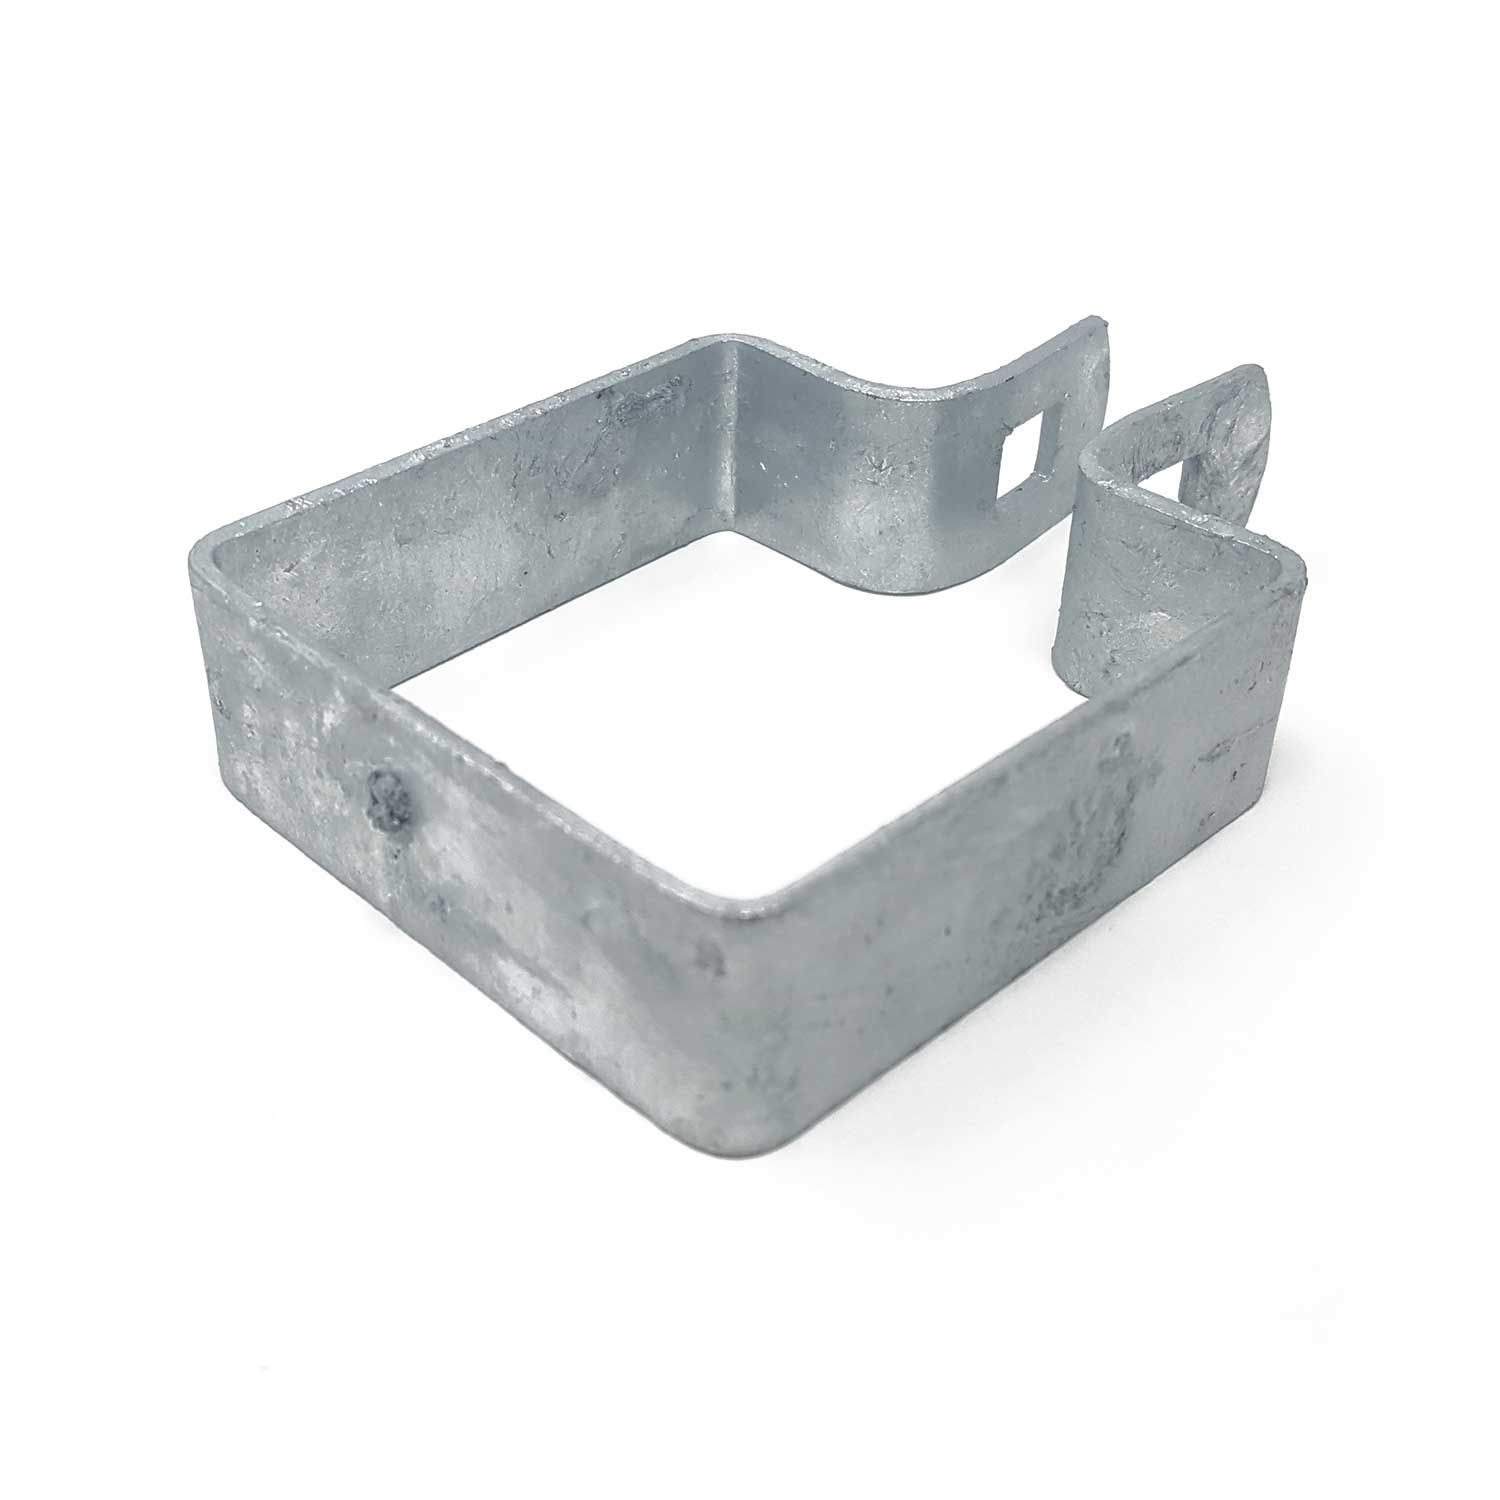 Chain Link Fence Brace Bands, Square - Galvanized